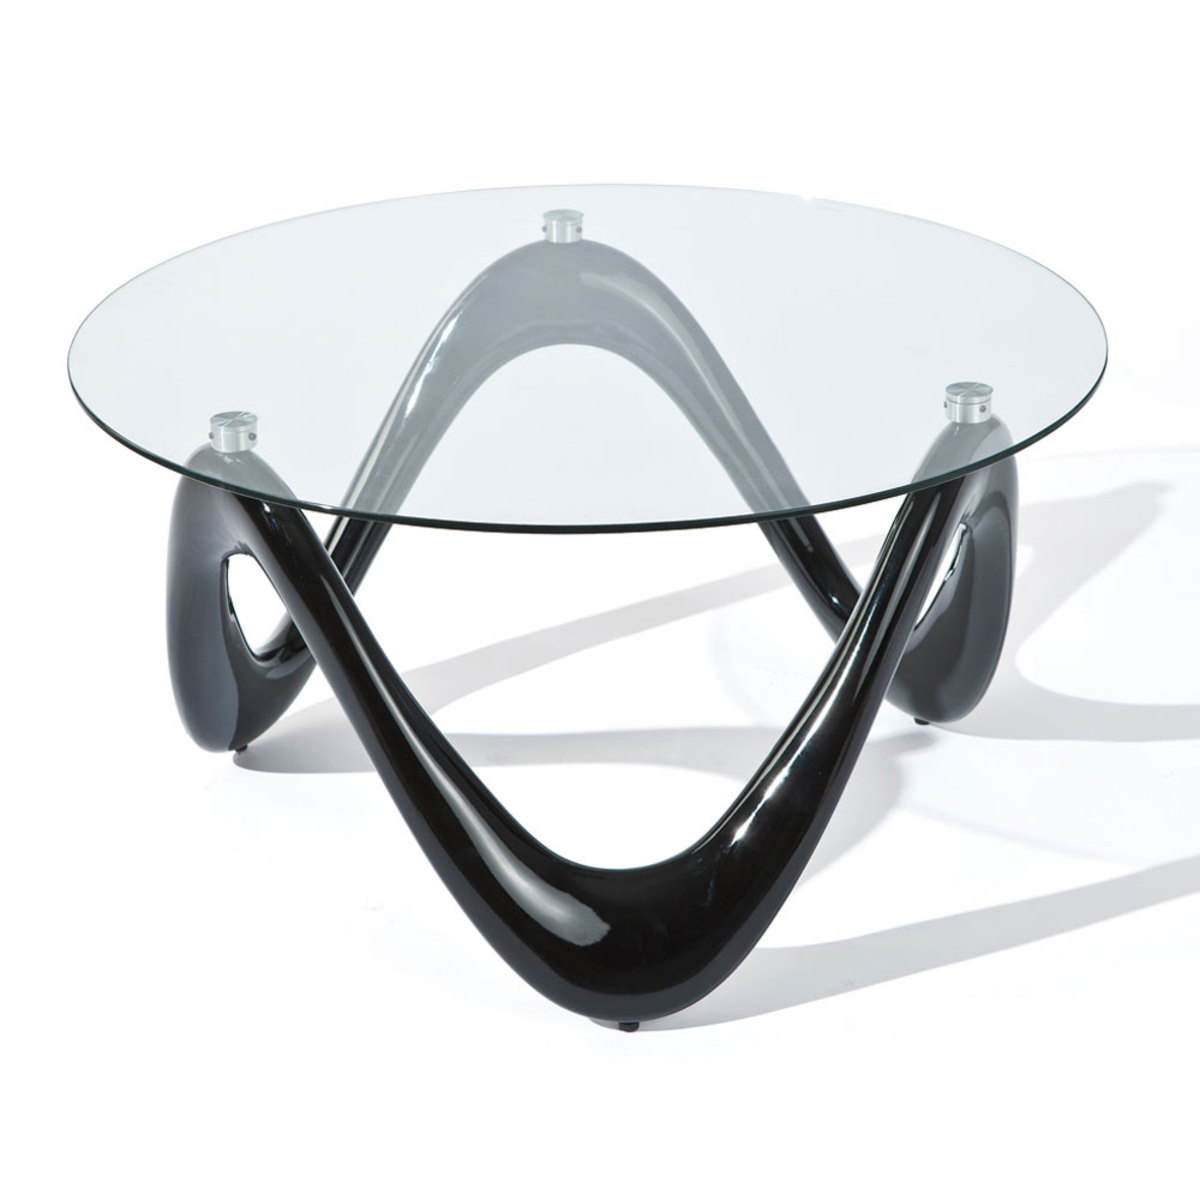 Table Basse Ronde En Verre Design Table Basse Ronde En Verre Design En Image